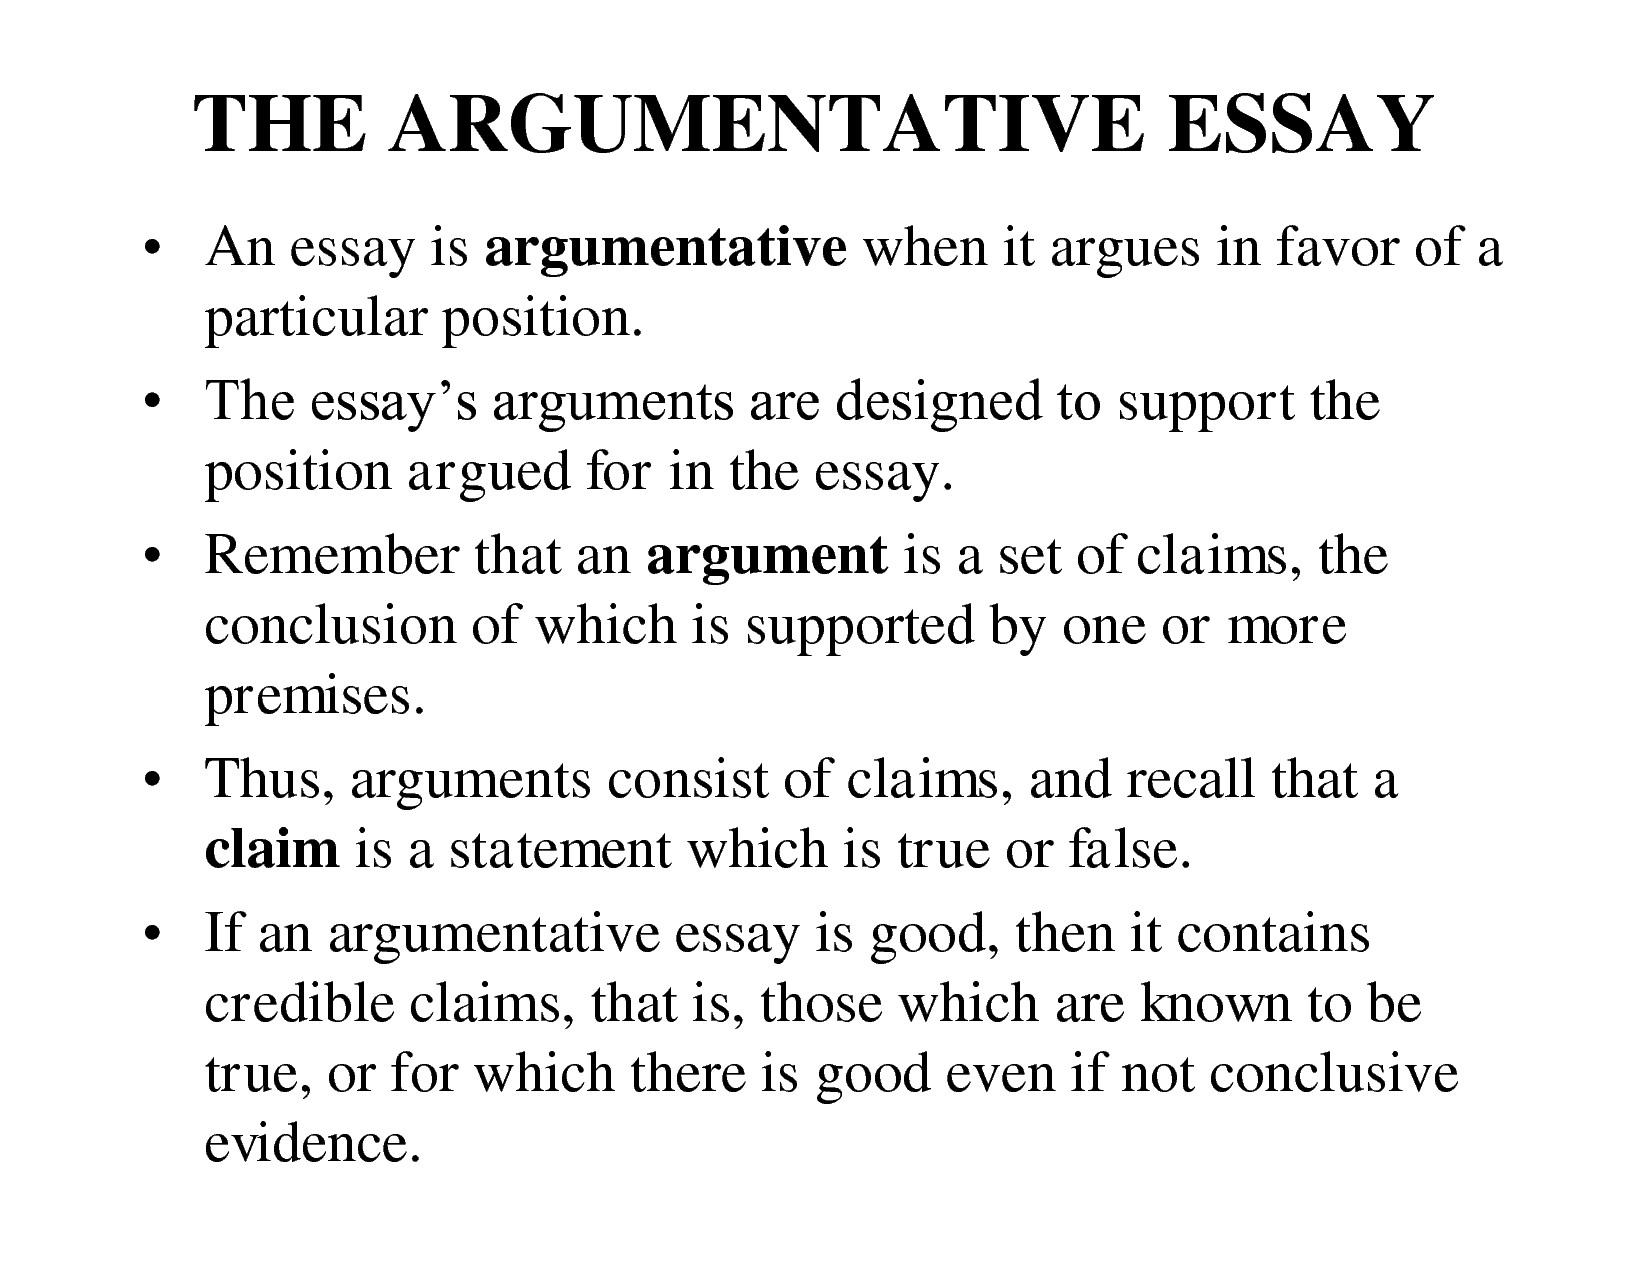 006 Argumentative Essay Conclusion Example World Of How To Write Good Concluding Paragraph For Persuasive Gse Bookbinder Co Rega Examples Argument Sentence Ways Conclude Wonderful An End Without Saying In Full